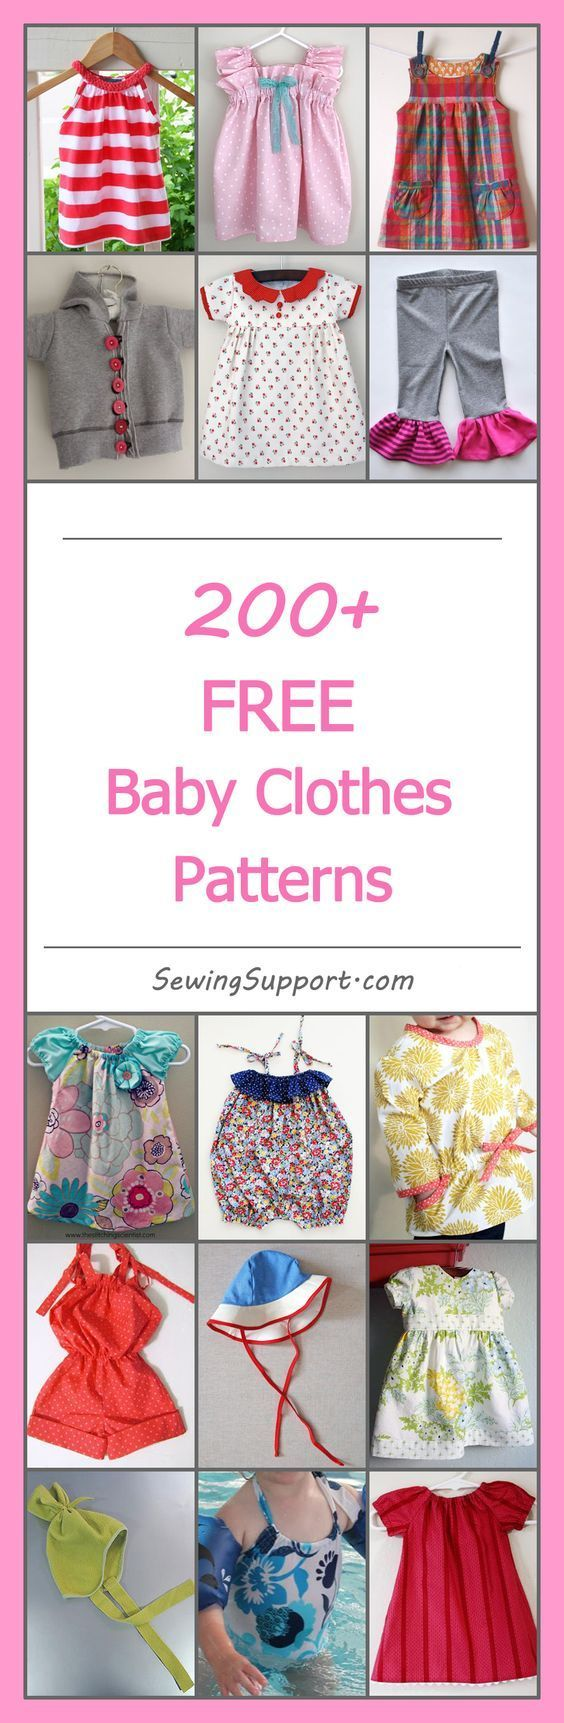 Lots of cute, free baby clothes patterns, tutorials, and diy sewing projects for boys and girls. Many simple, easy designs. Sew dresses, rompers, hats, booties, and more. #babyclothespatterns